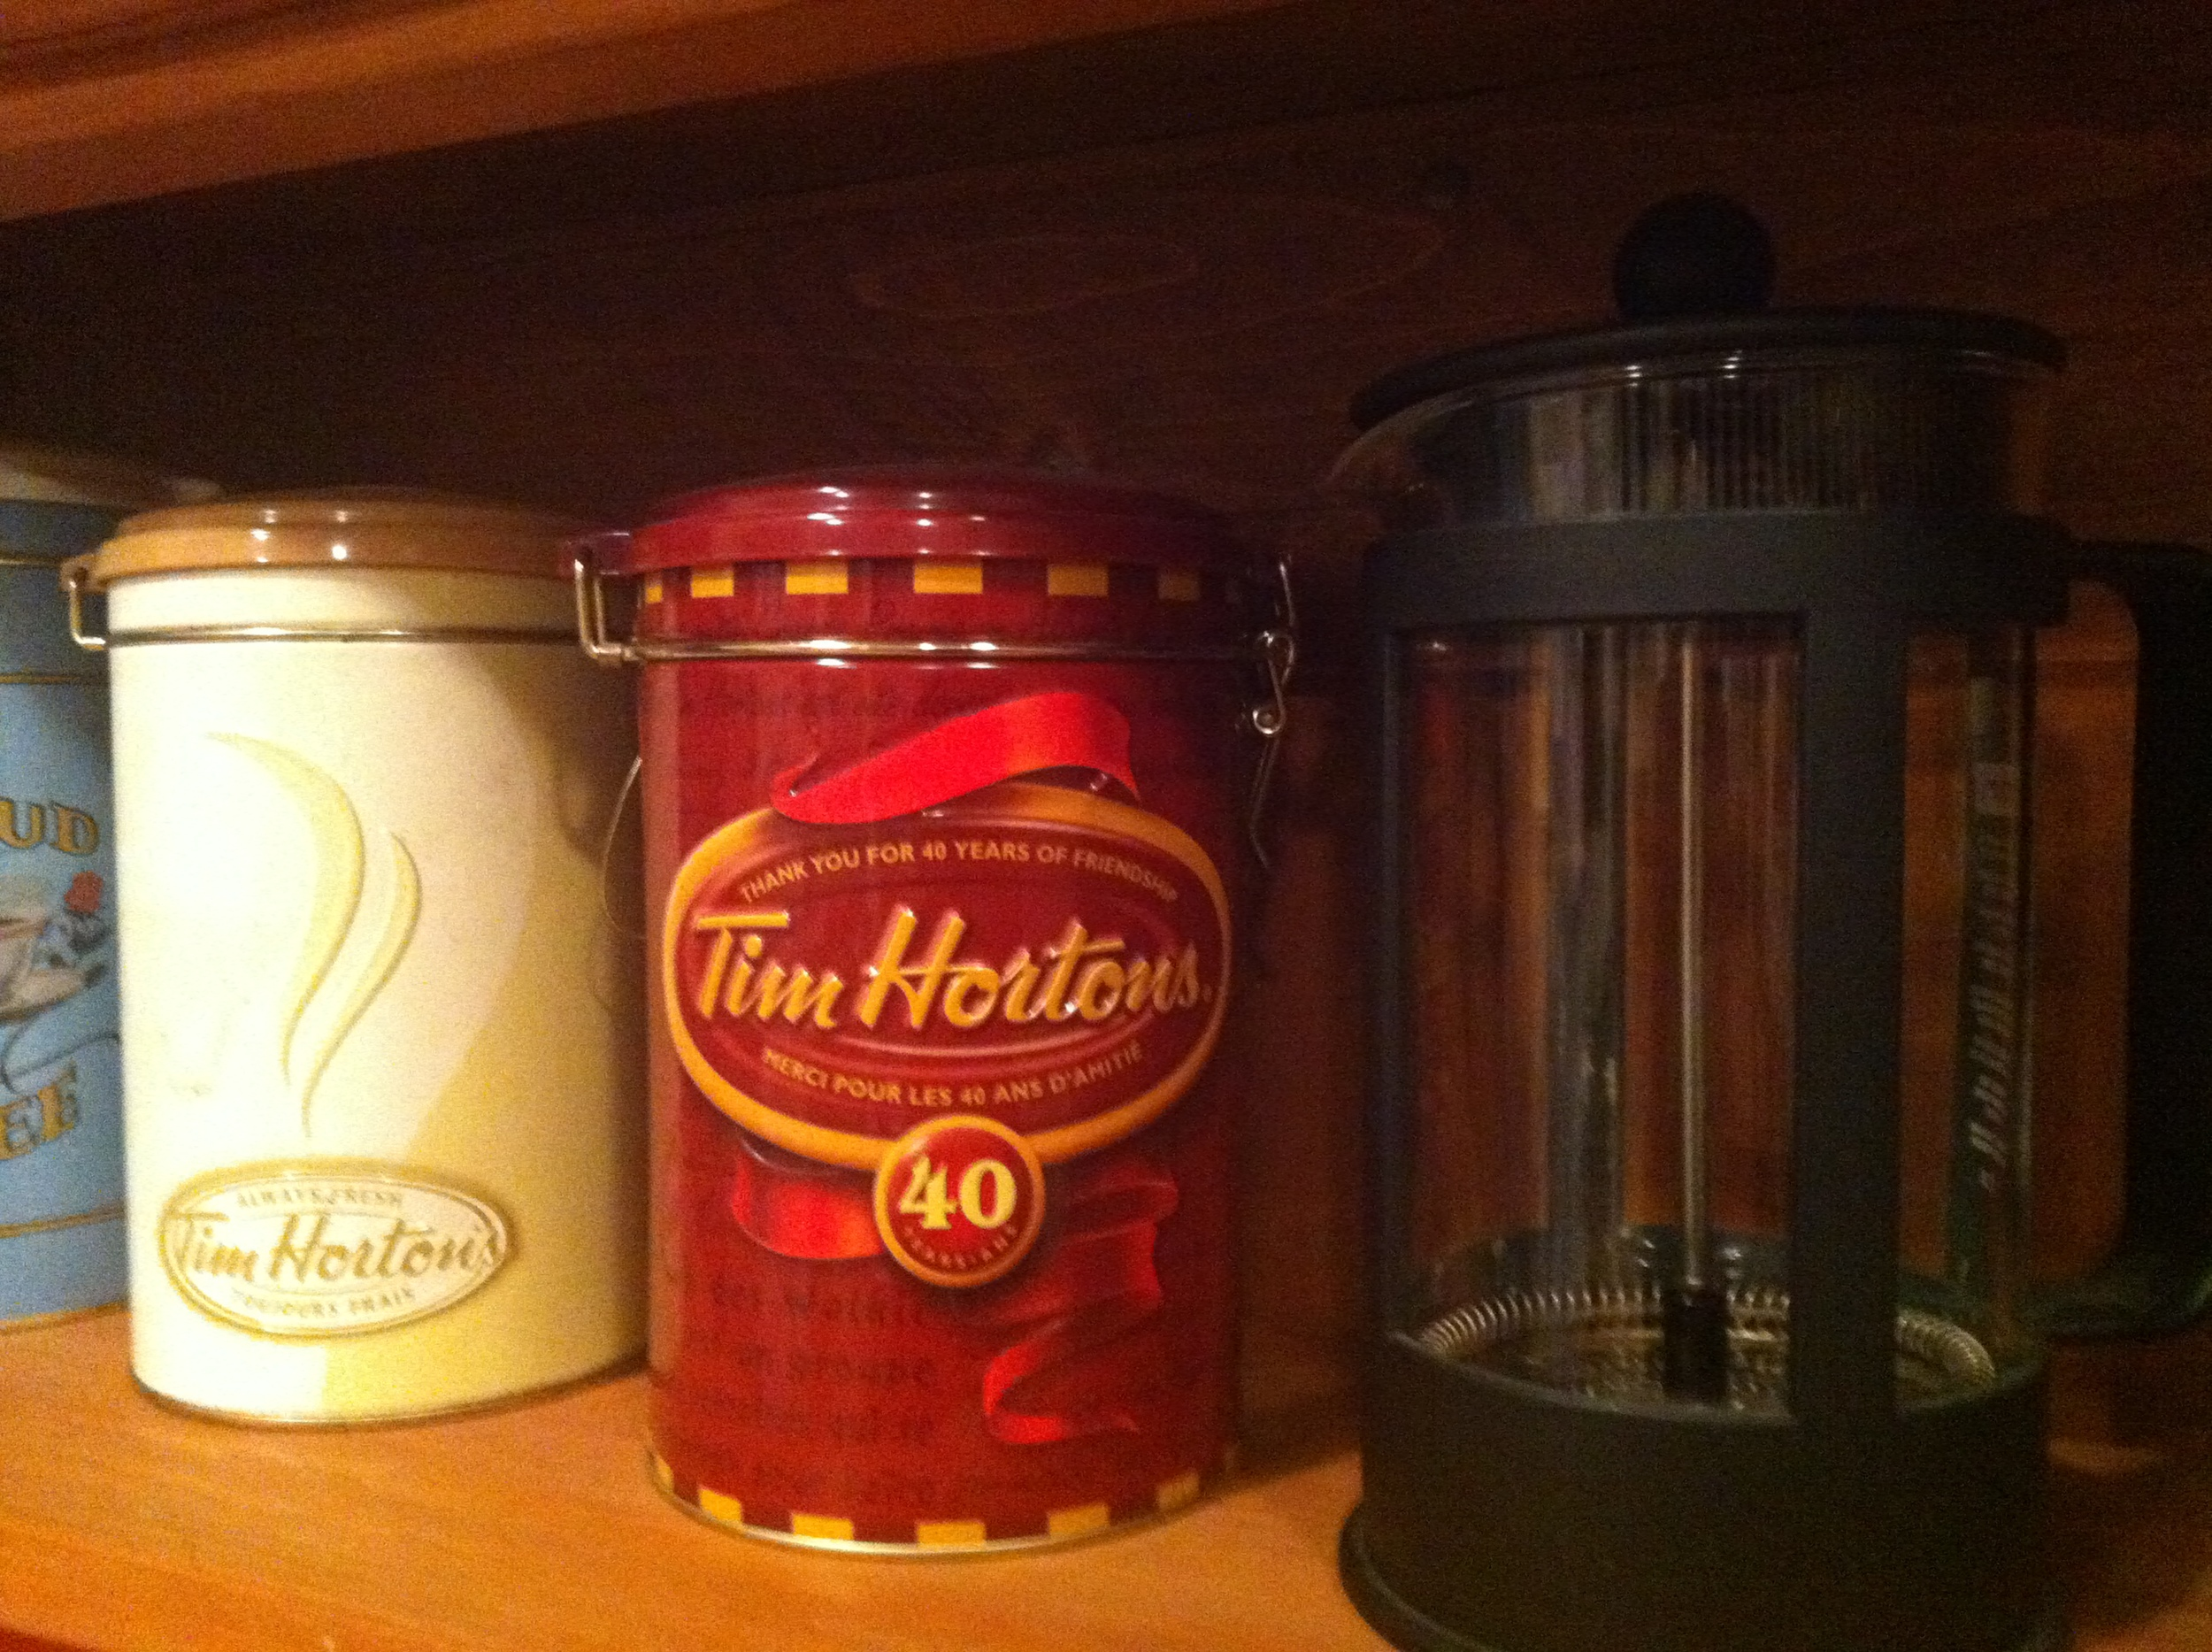 Canisters sit empty on our shelves, a stark reminder of what was, and what one day may be again ...